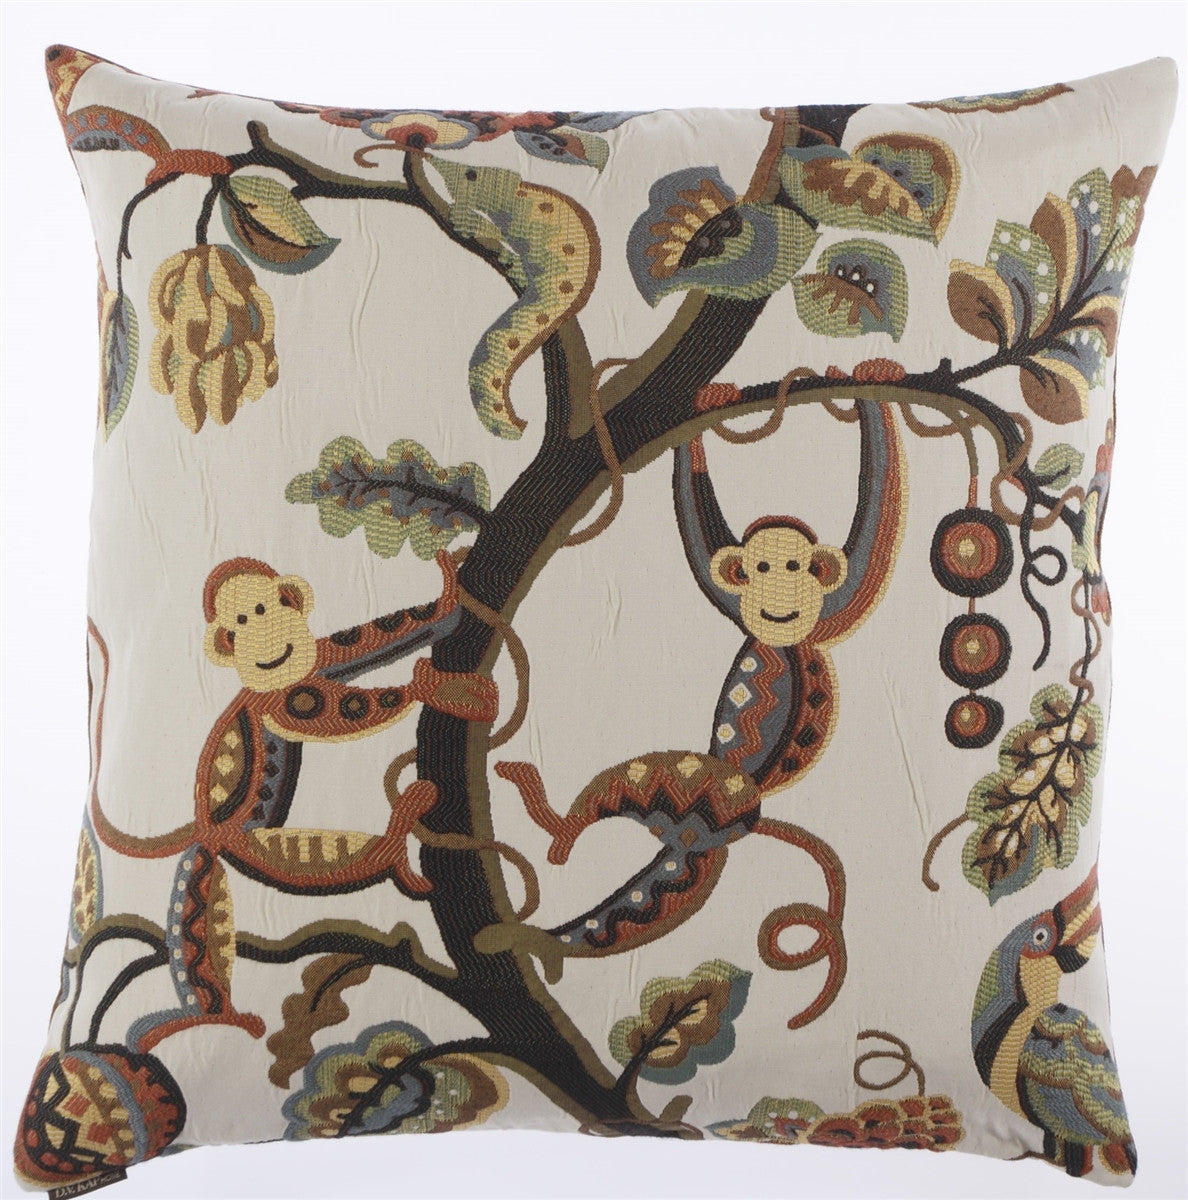 DV Kap Home - Crazy Monkey Toss Pillow